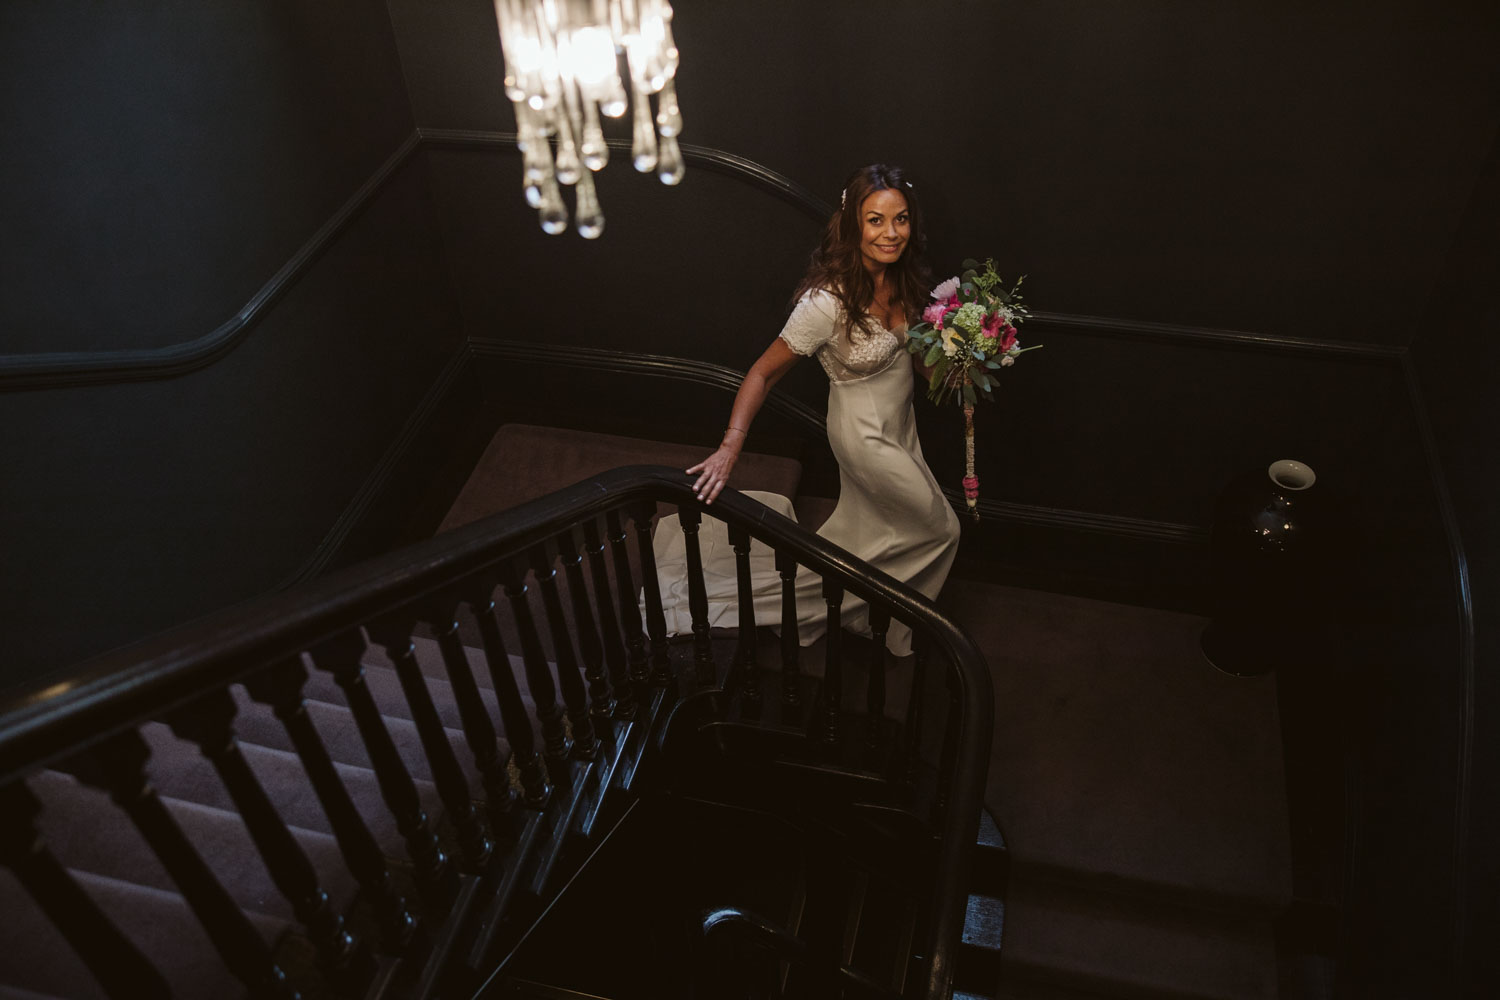 Bride on staircase holding bouquet